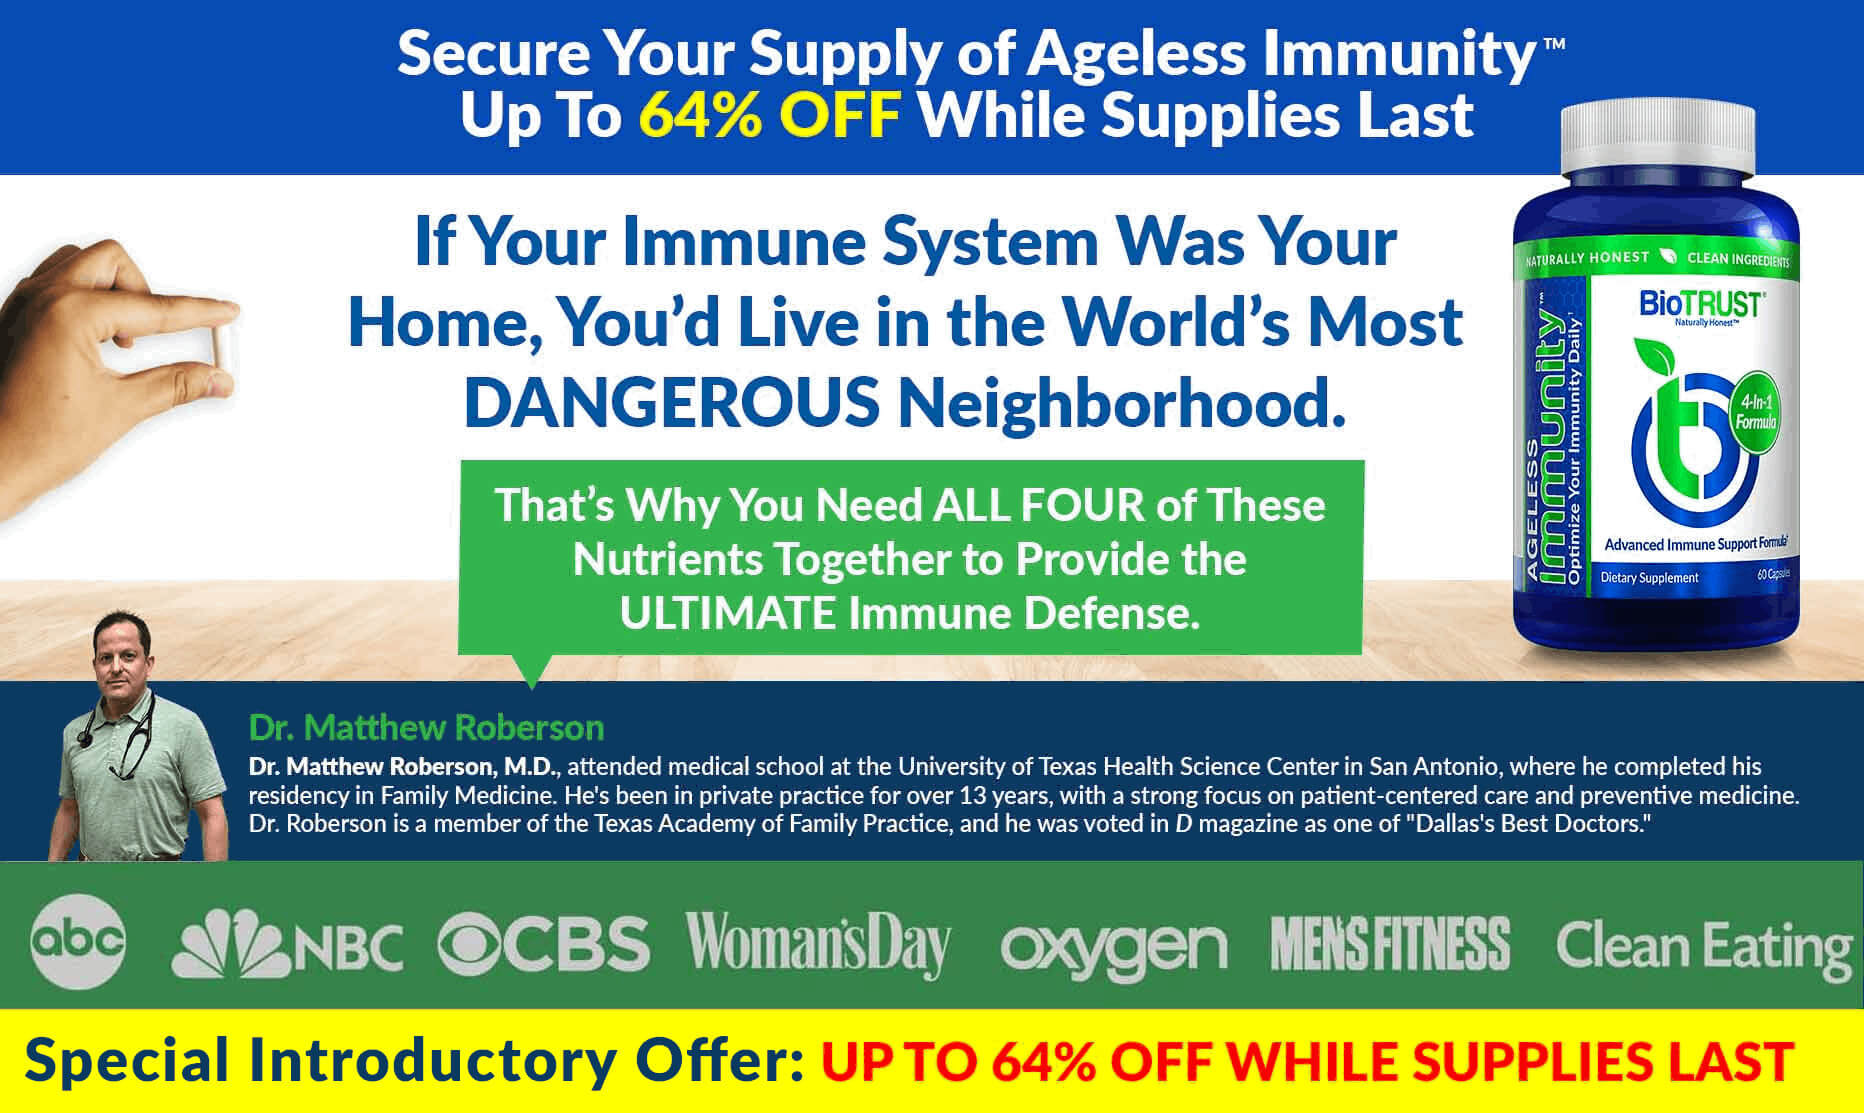 BioTRUST Ageless Immunity 64% Off